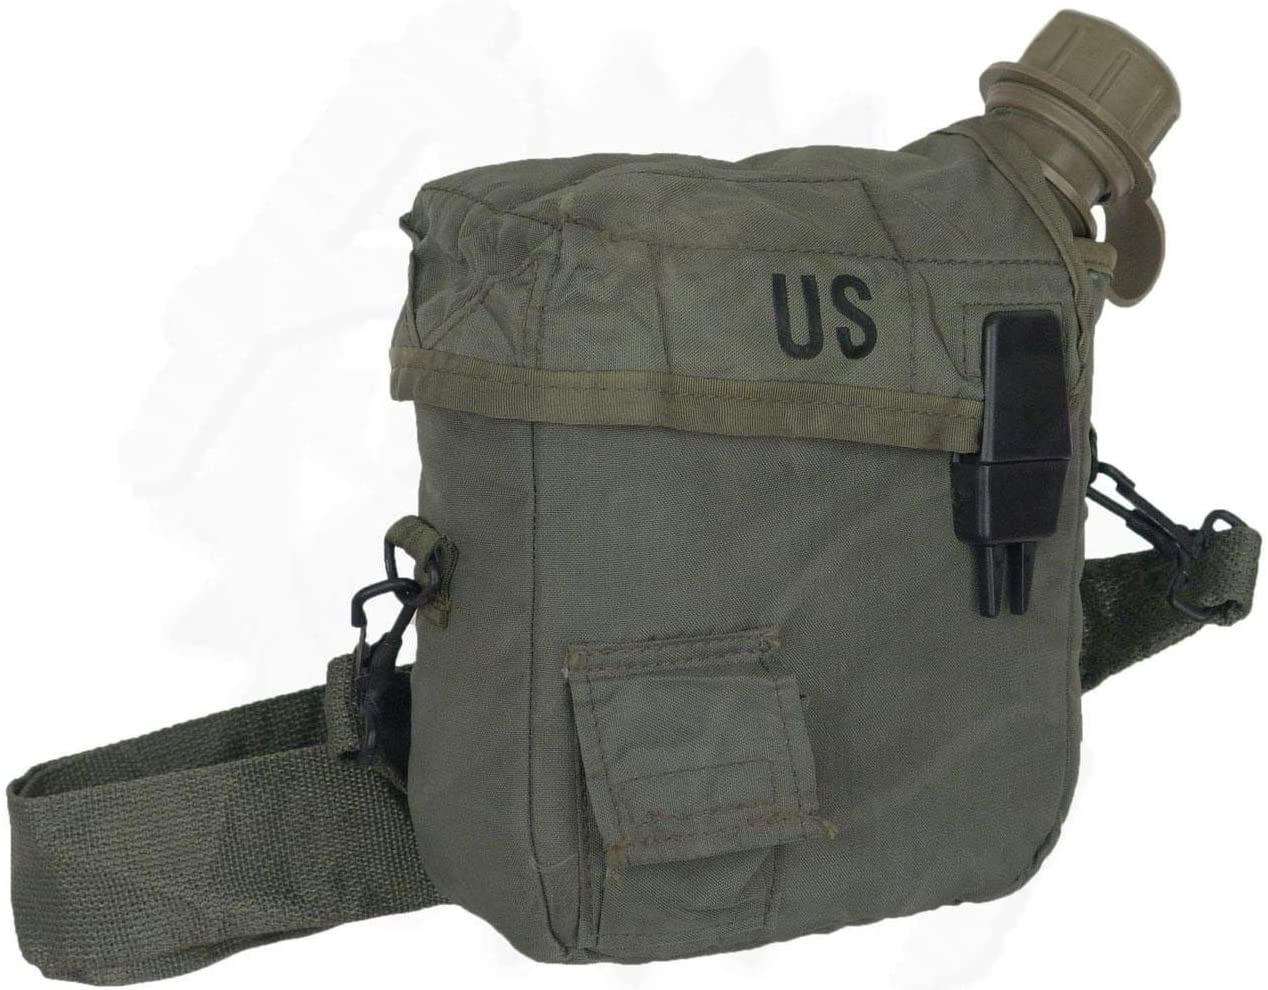 US Military 2 Qt. Collapsible Water Canteen with Cover